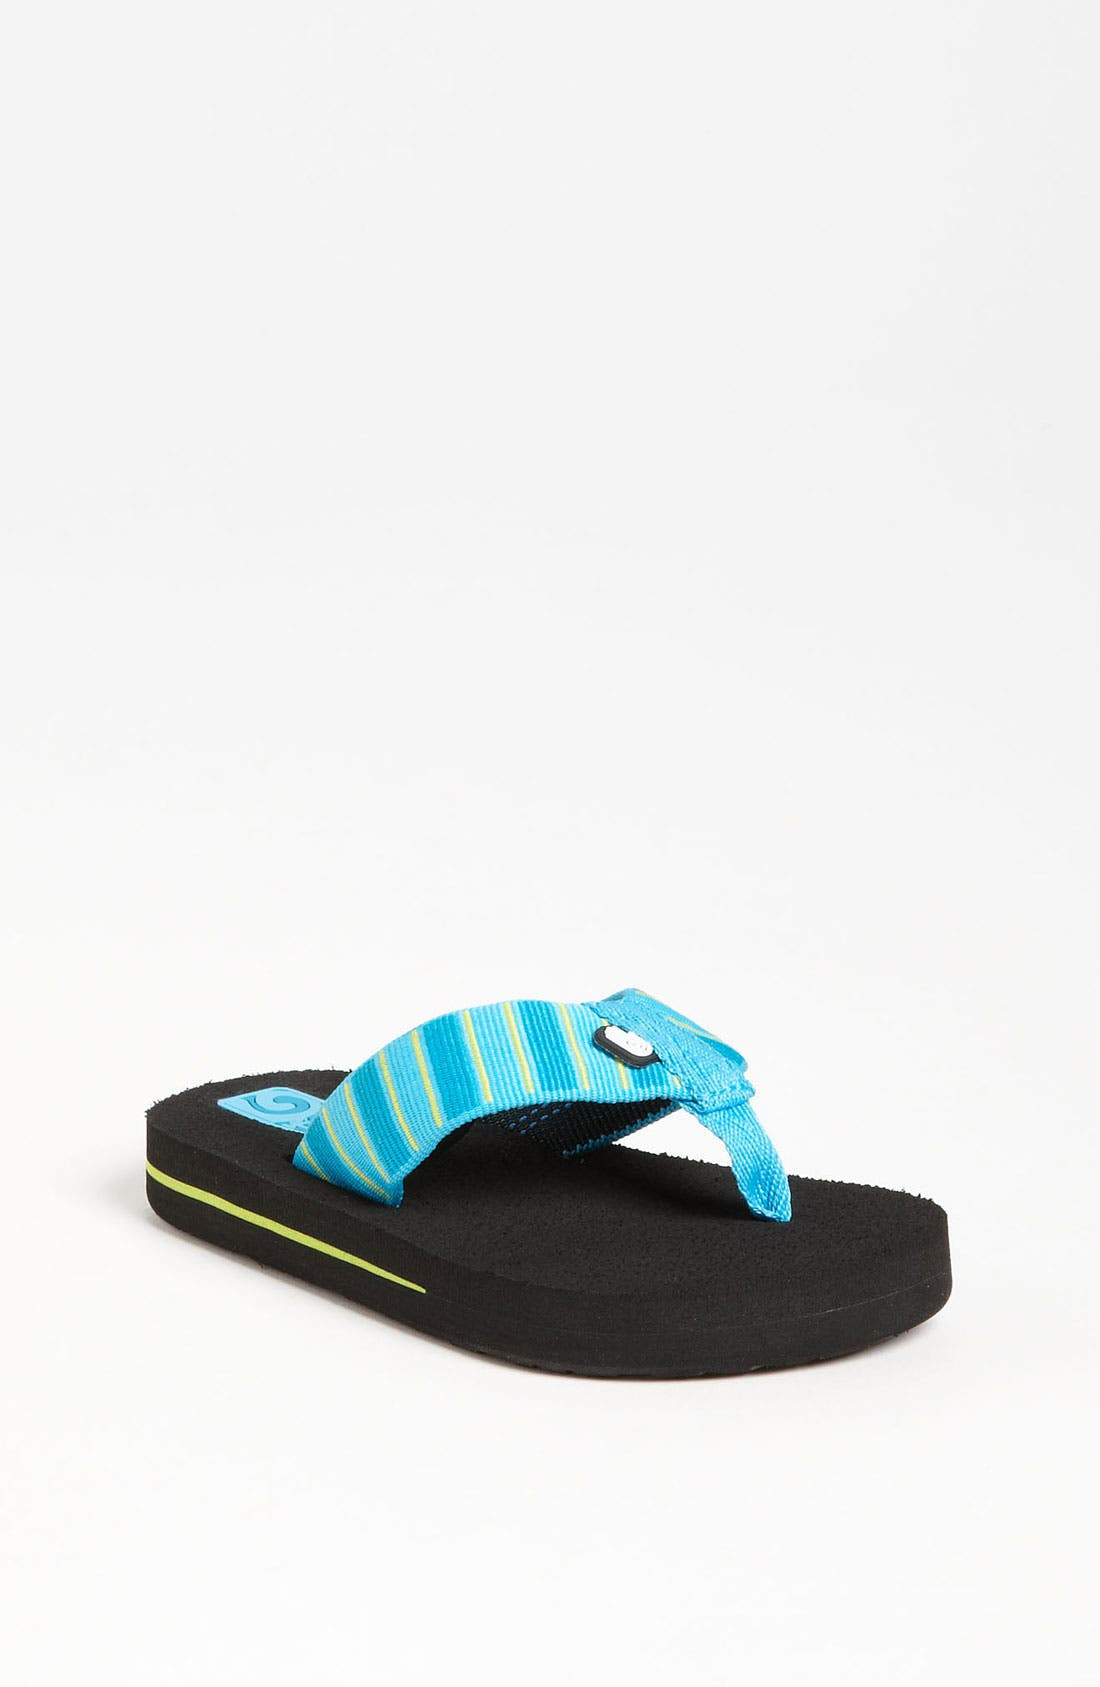 Alternate Image 1 Selected - Teva 'Mush' Sandal (Toddler, Little Kid & Big Kid)